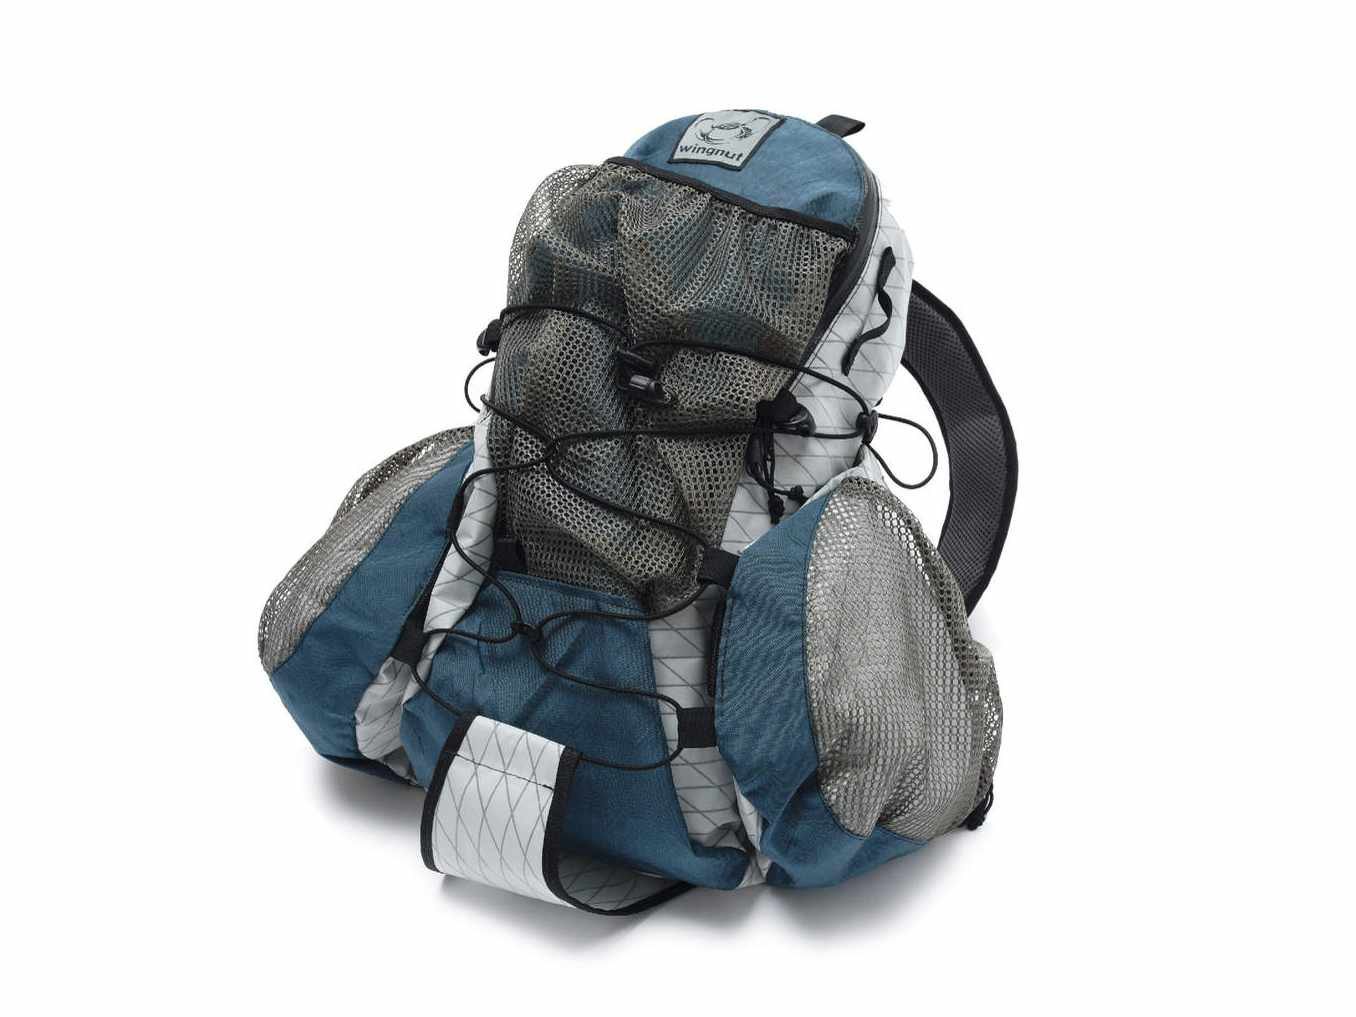 Wingnut Adventure Pack